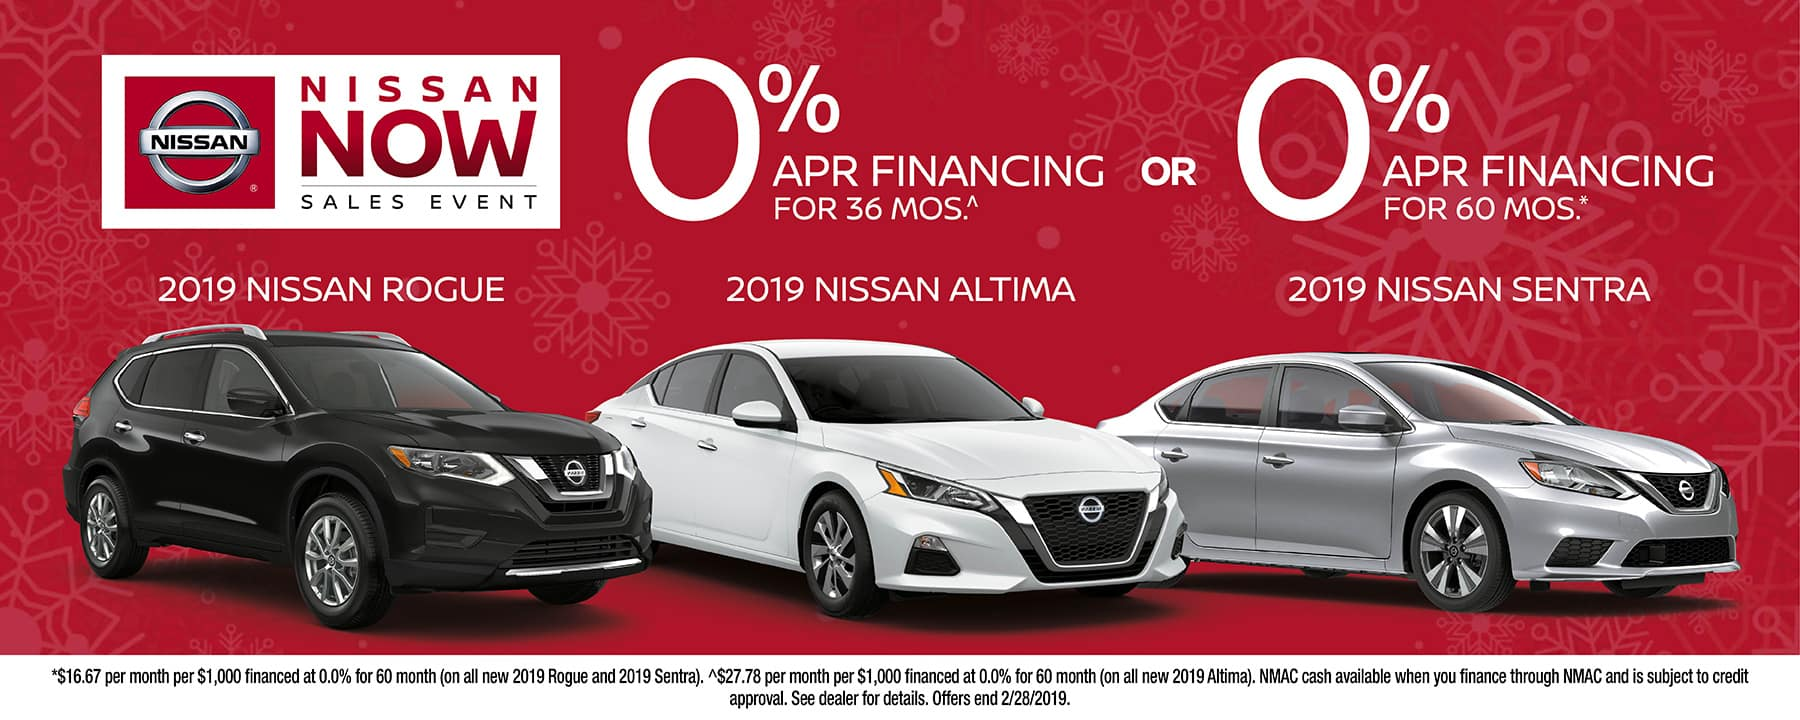 Take advantage of 0% APR Financing on a 2019 Nissan Sentra, 2019 Nissan Rogue, or 2019 Nissan Altima at Berman Nissan of Chicago!